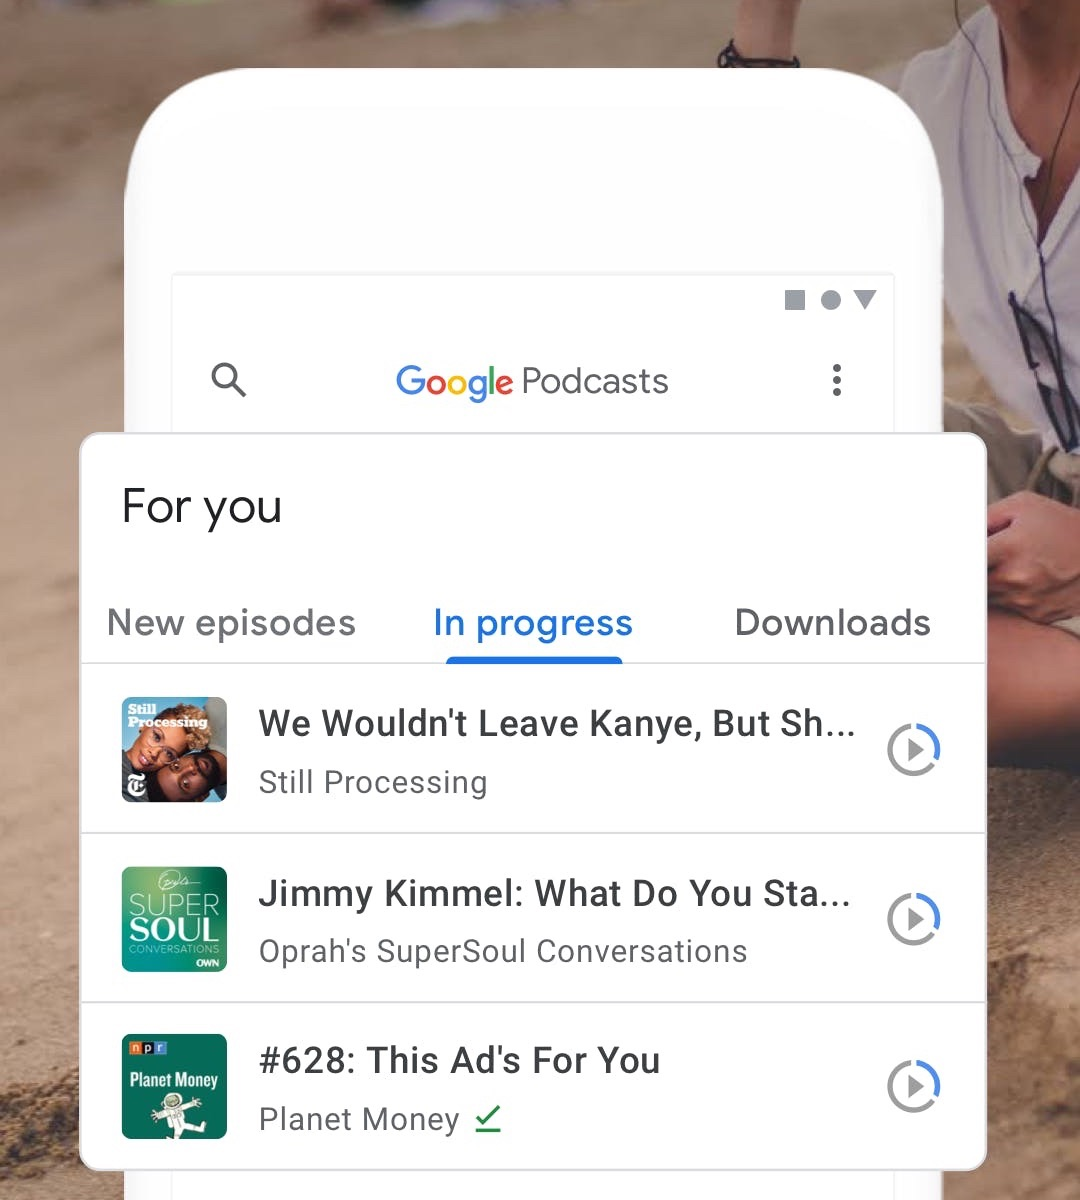 Google Podcasts Android App